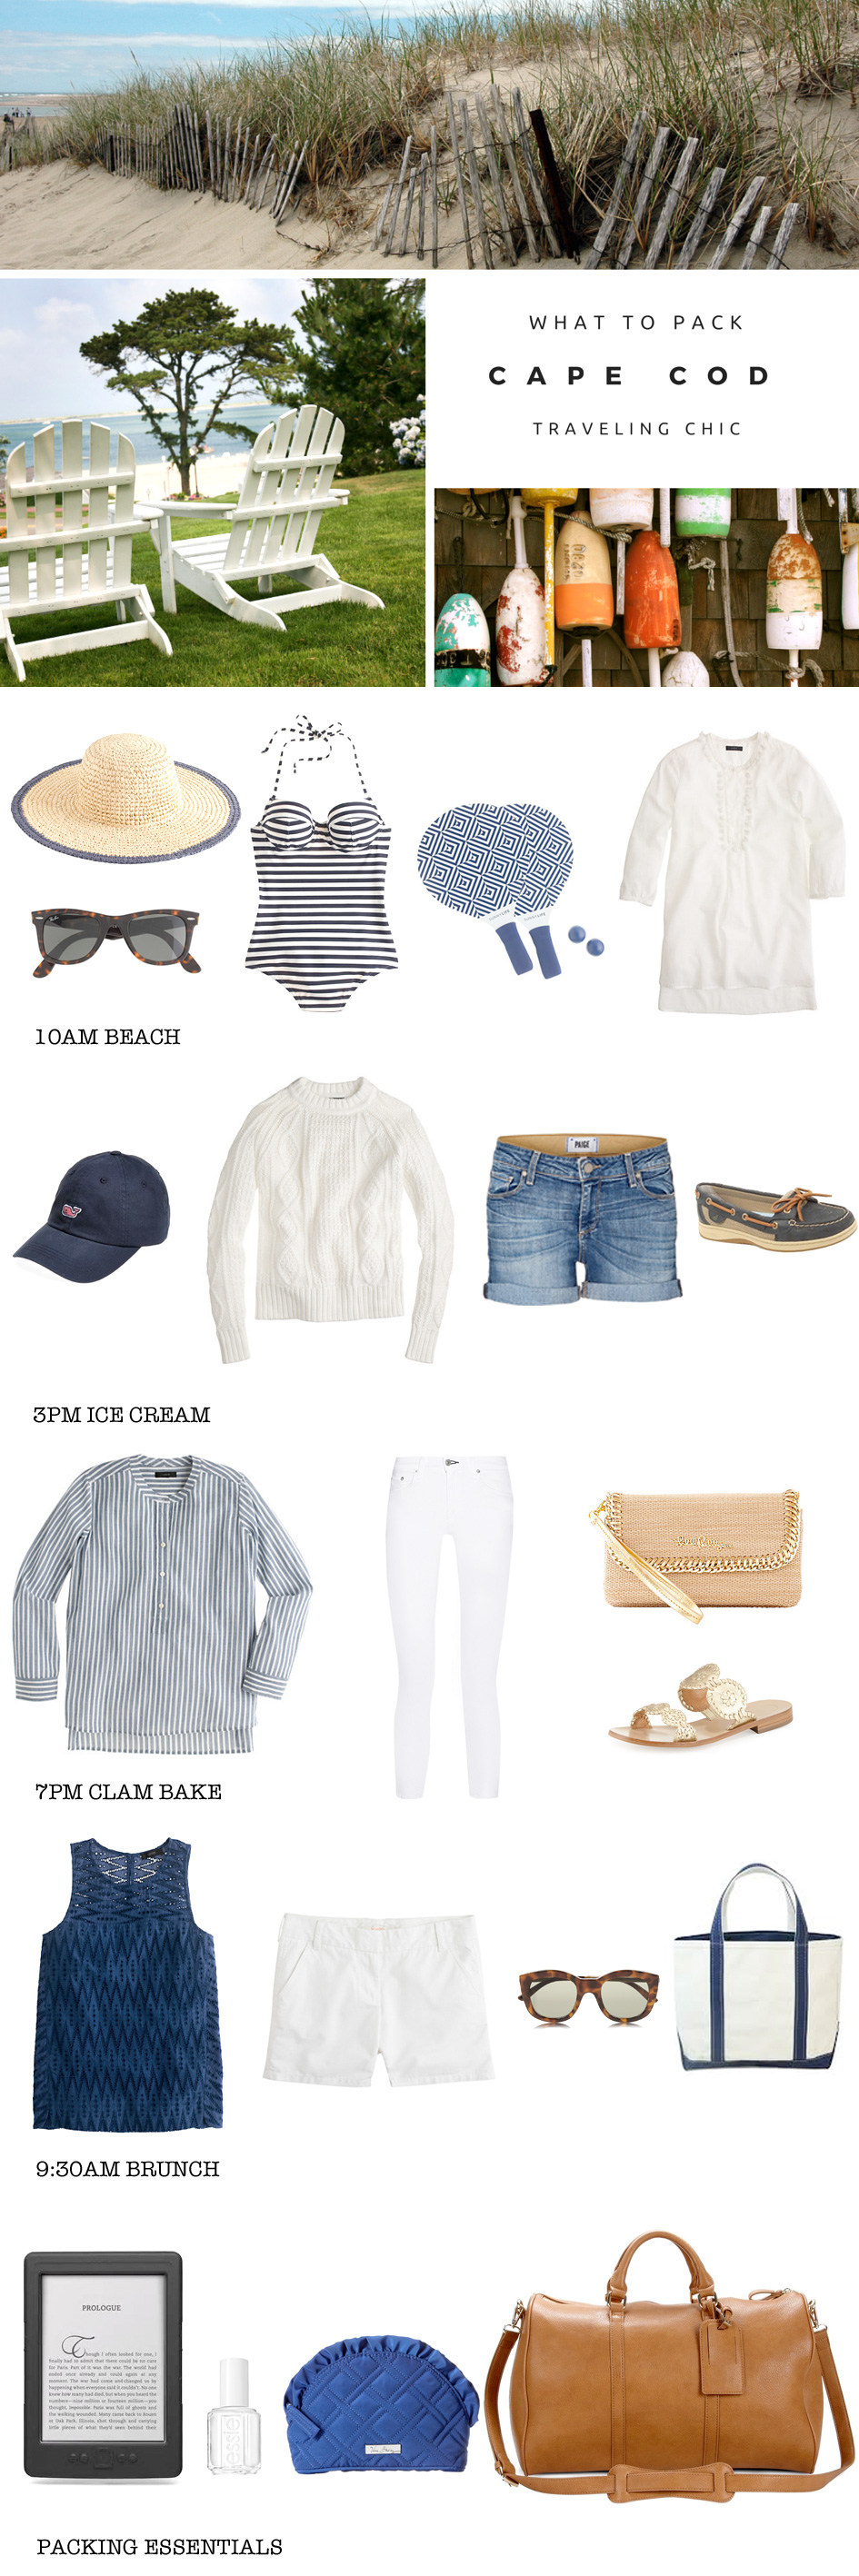 What to Pack for Cape Cod